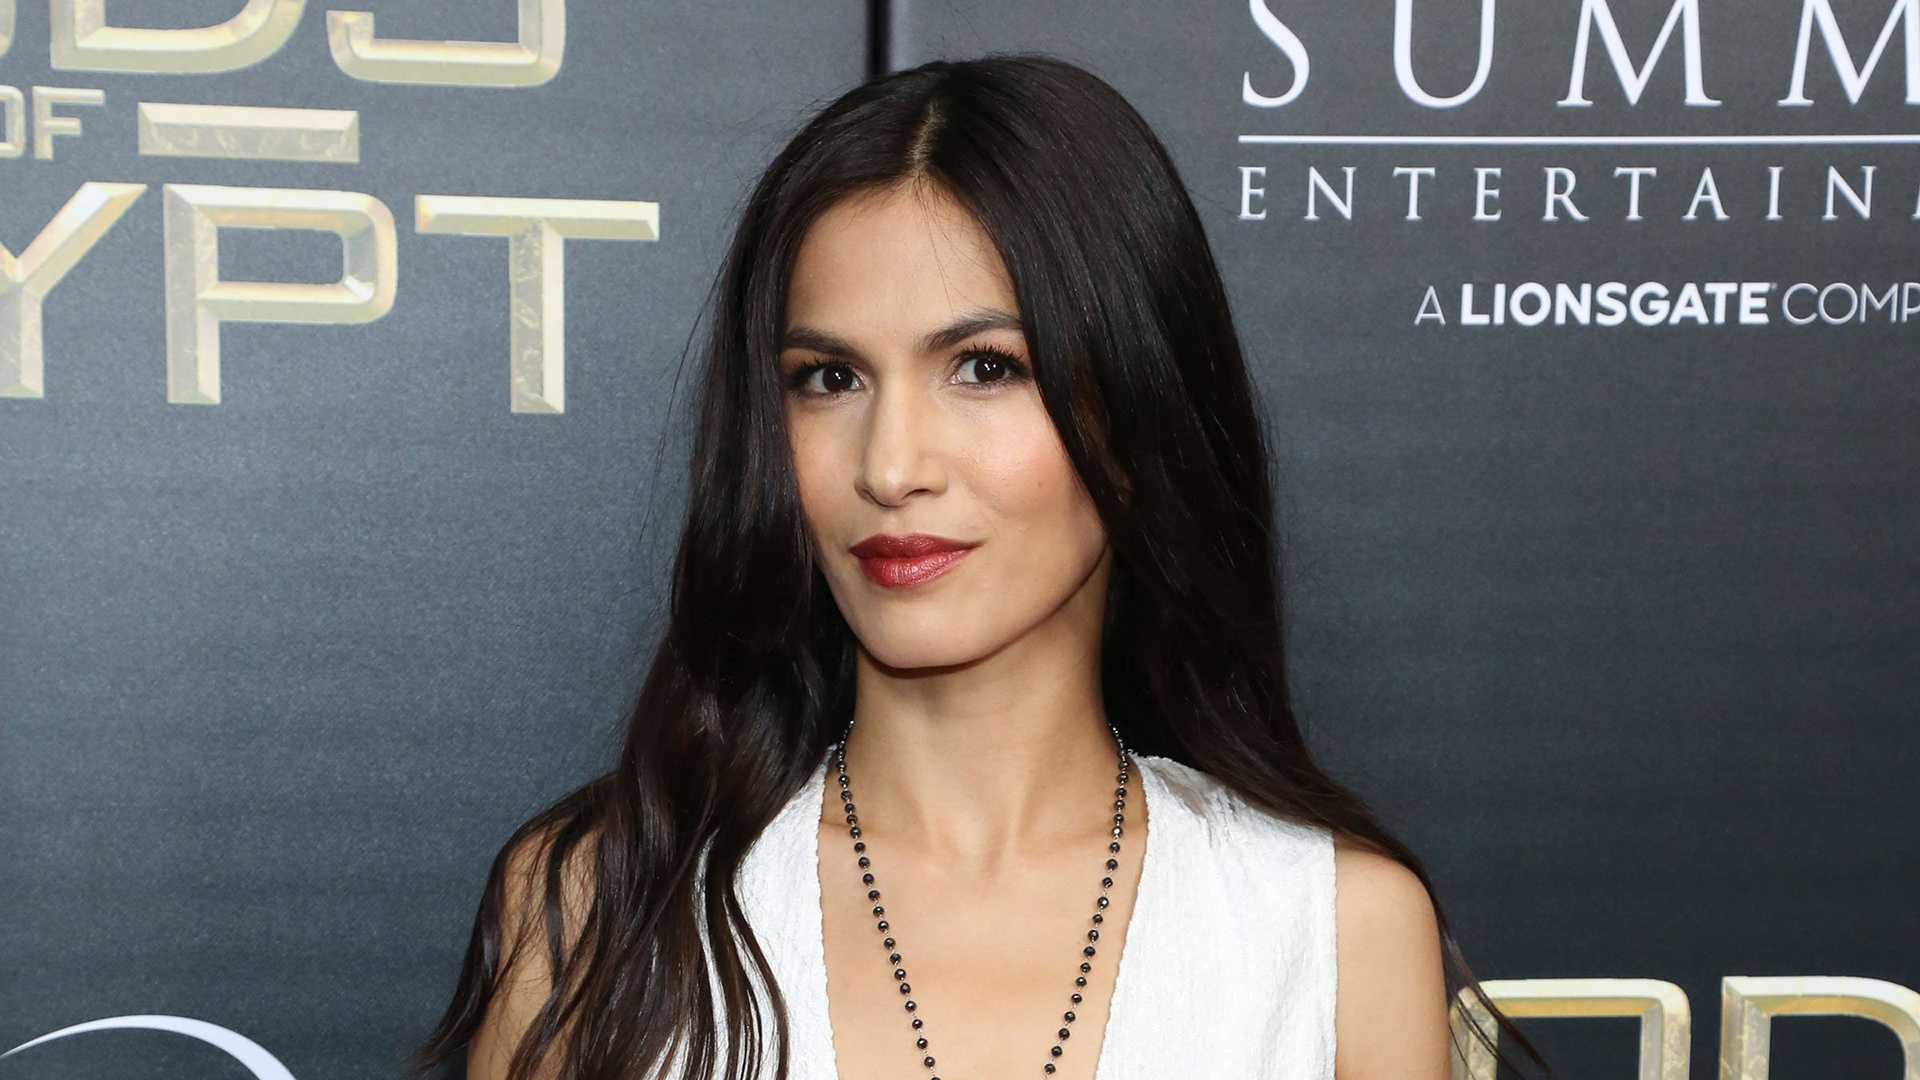 1920x1080 - Elodie Yung Wallpapers 1